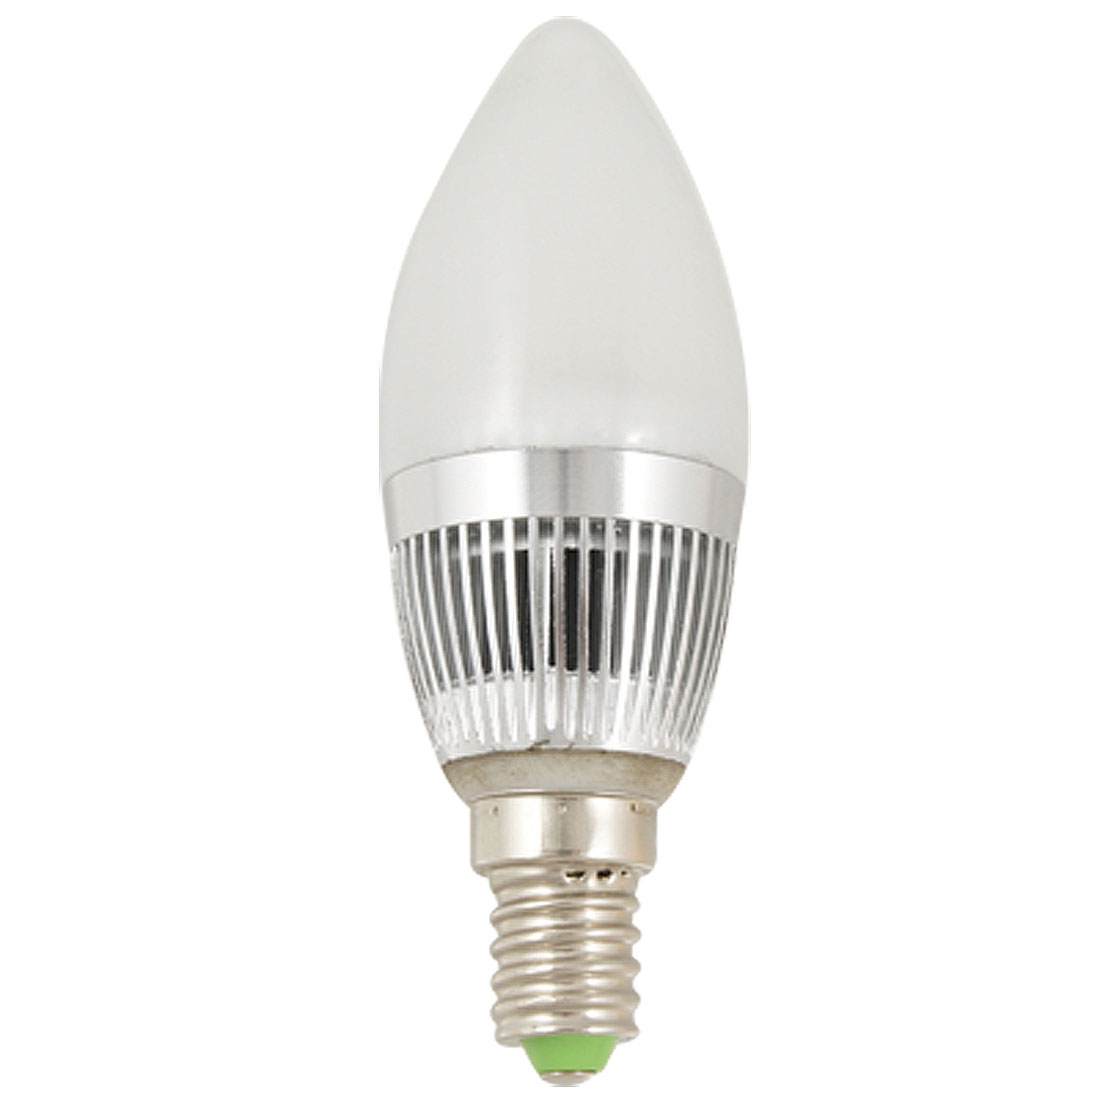 E14 Screw Base 3200K Warm White LED Light Energy Saving Bulb 1x3W